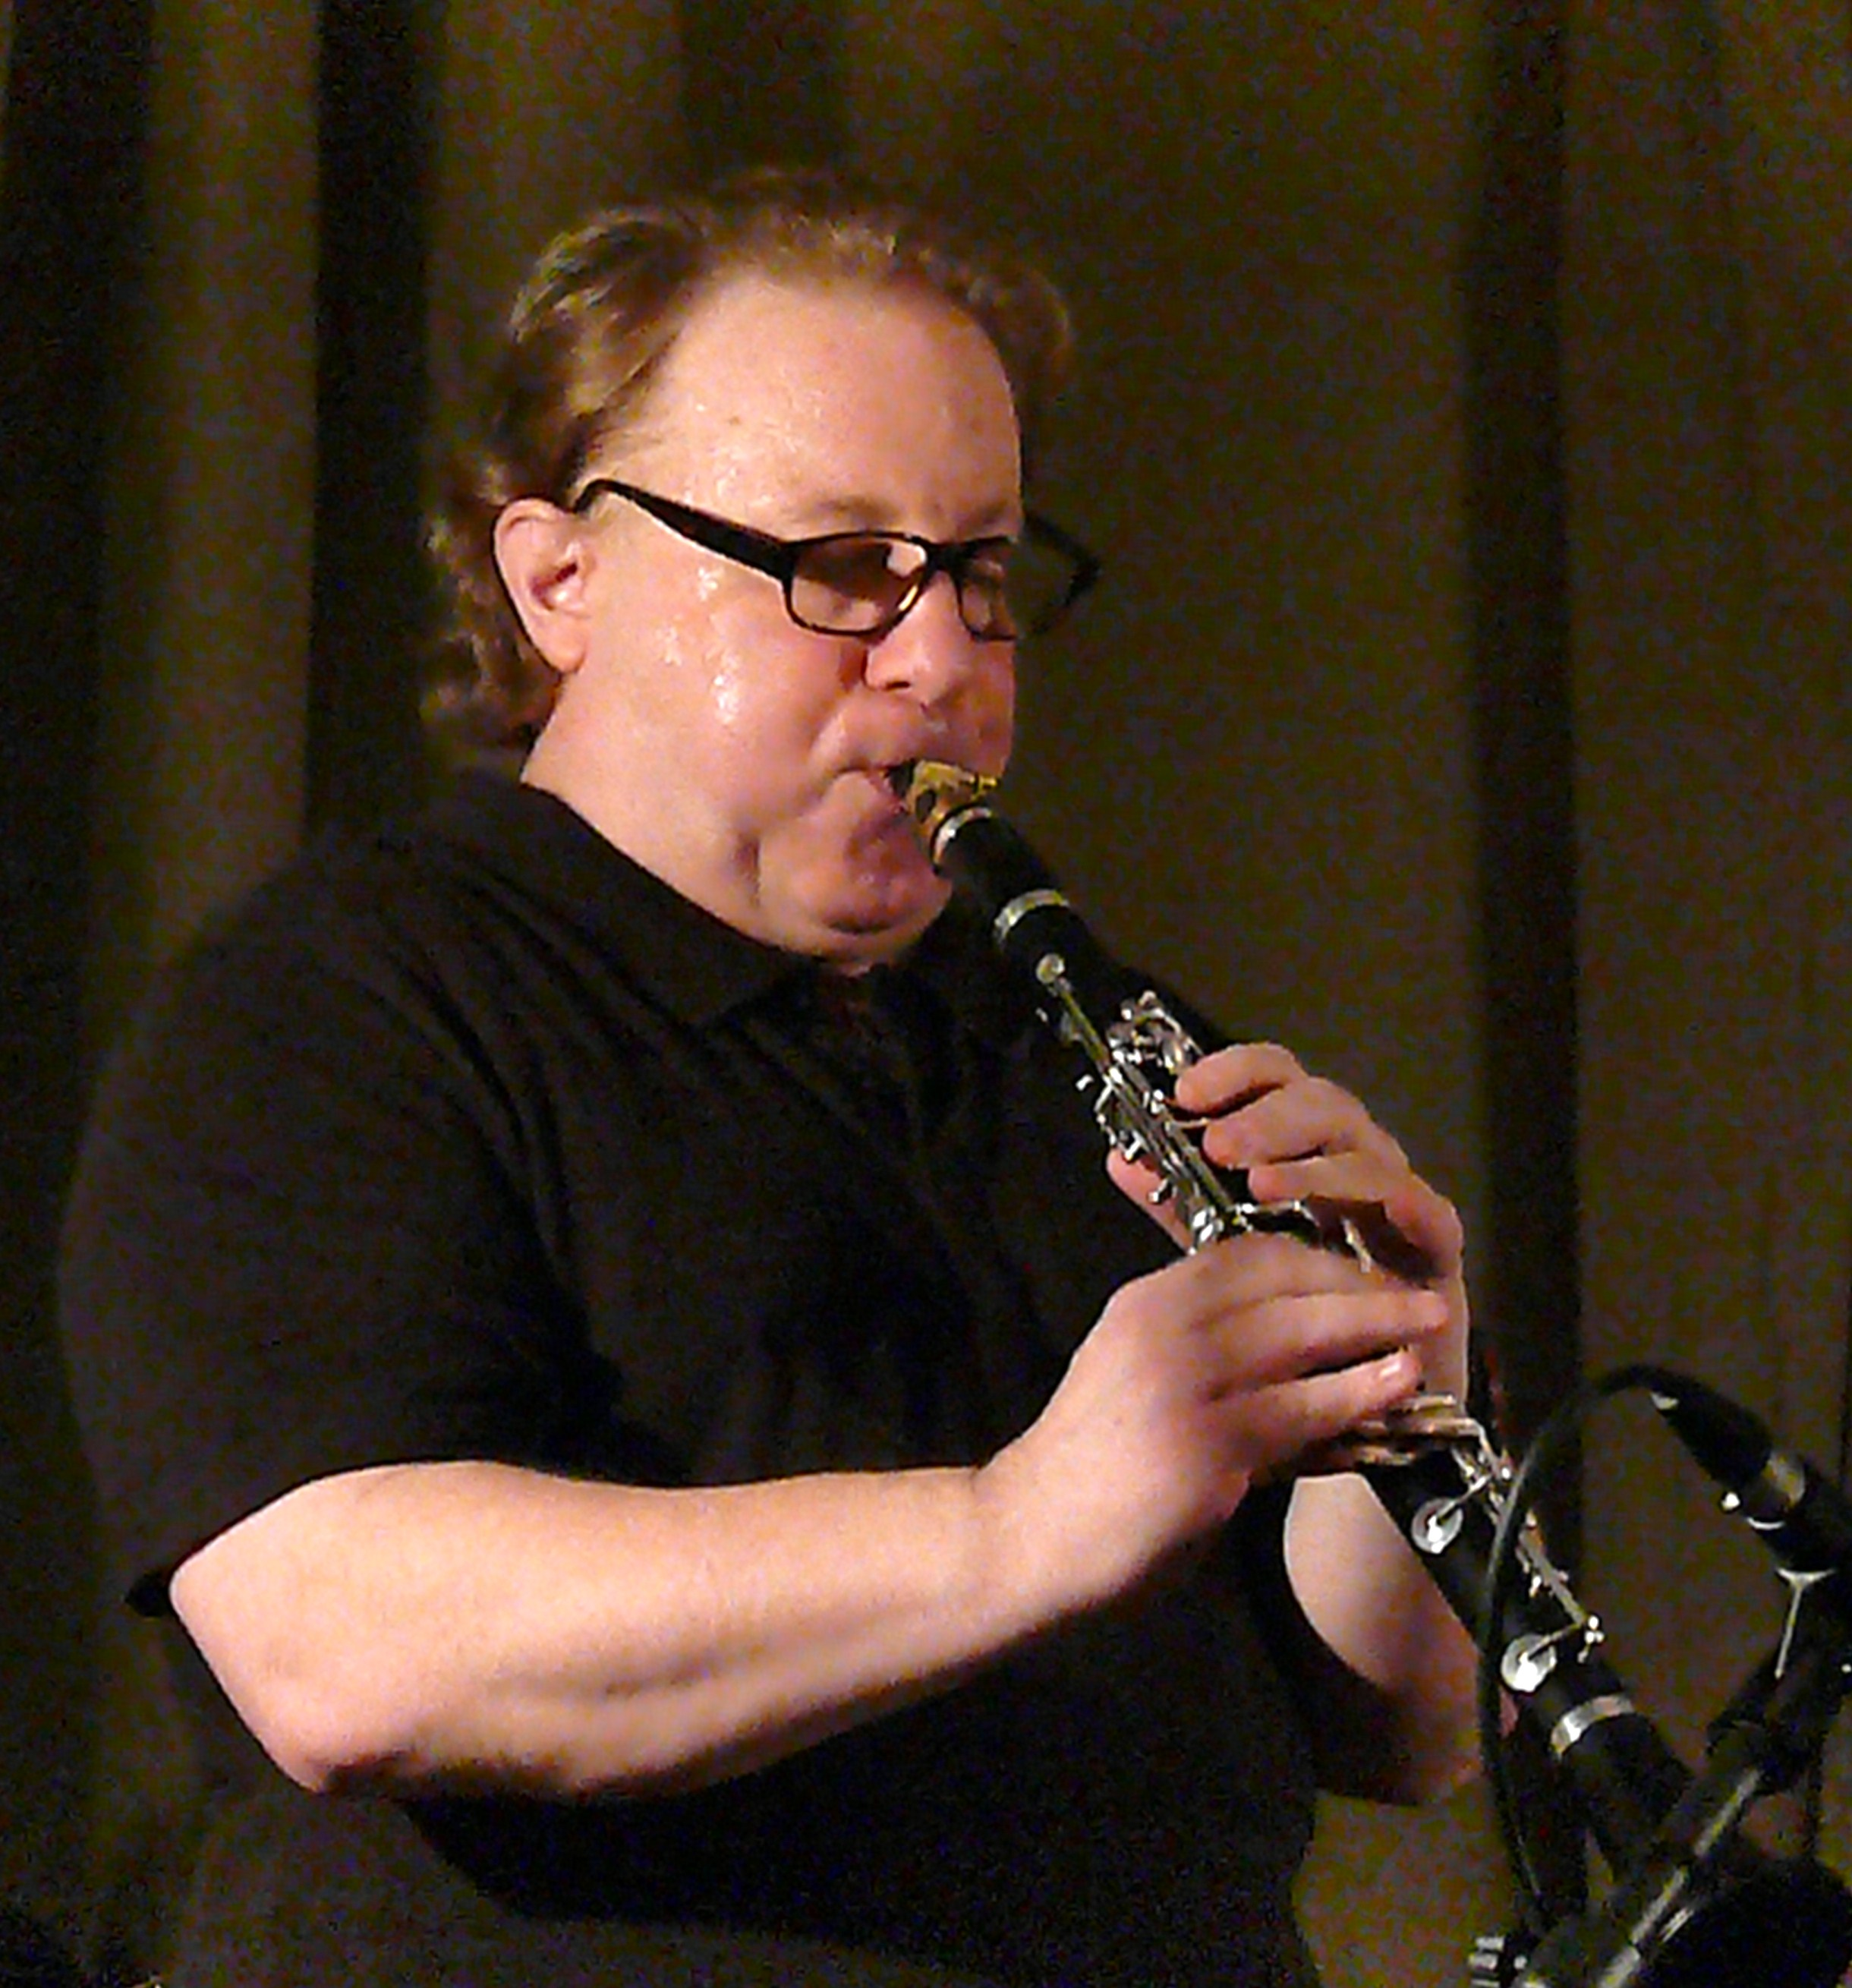 Michael Marcus with Duology + 2 at Cafe Oto